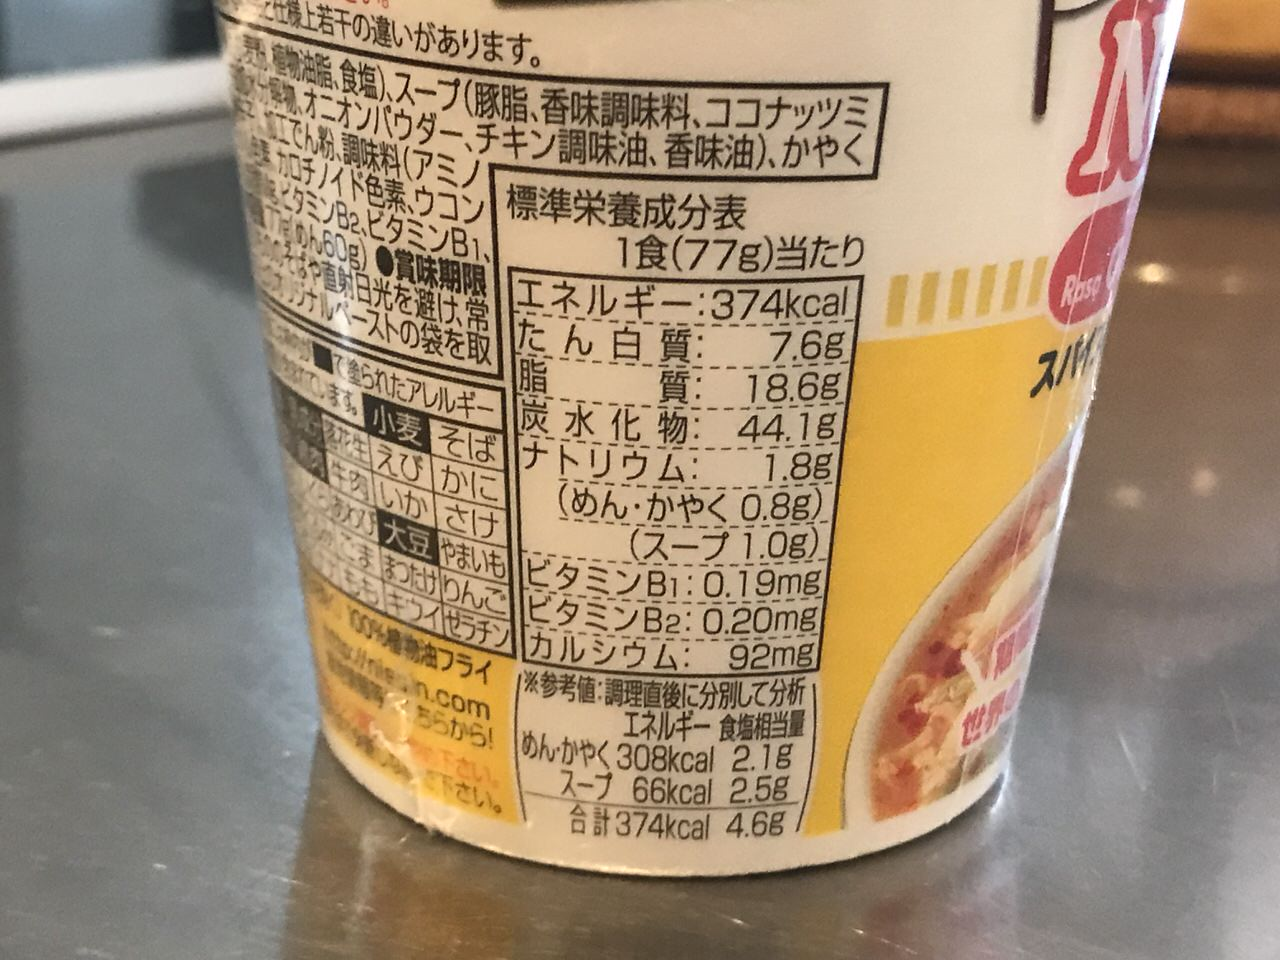 Cupnoodle coconuts 6483